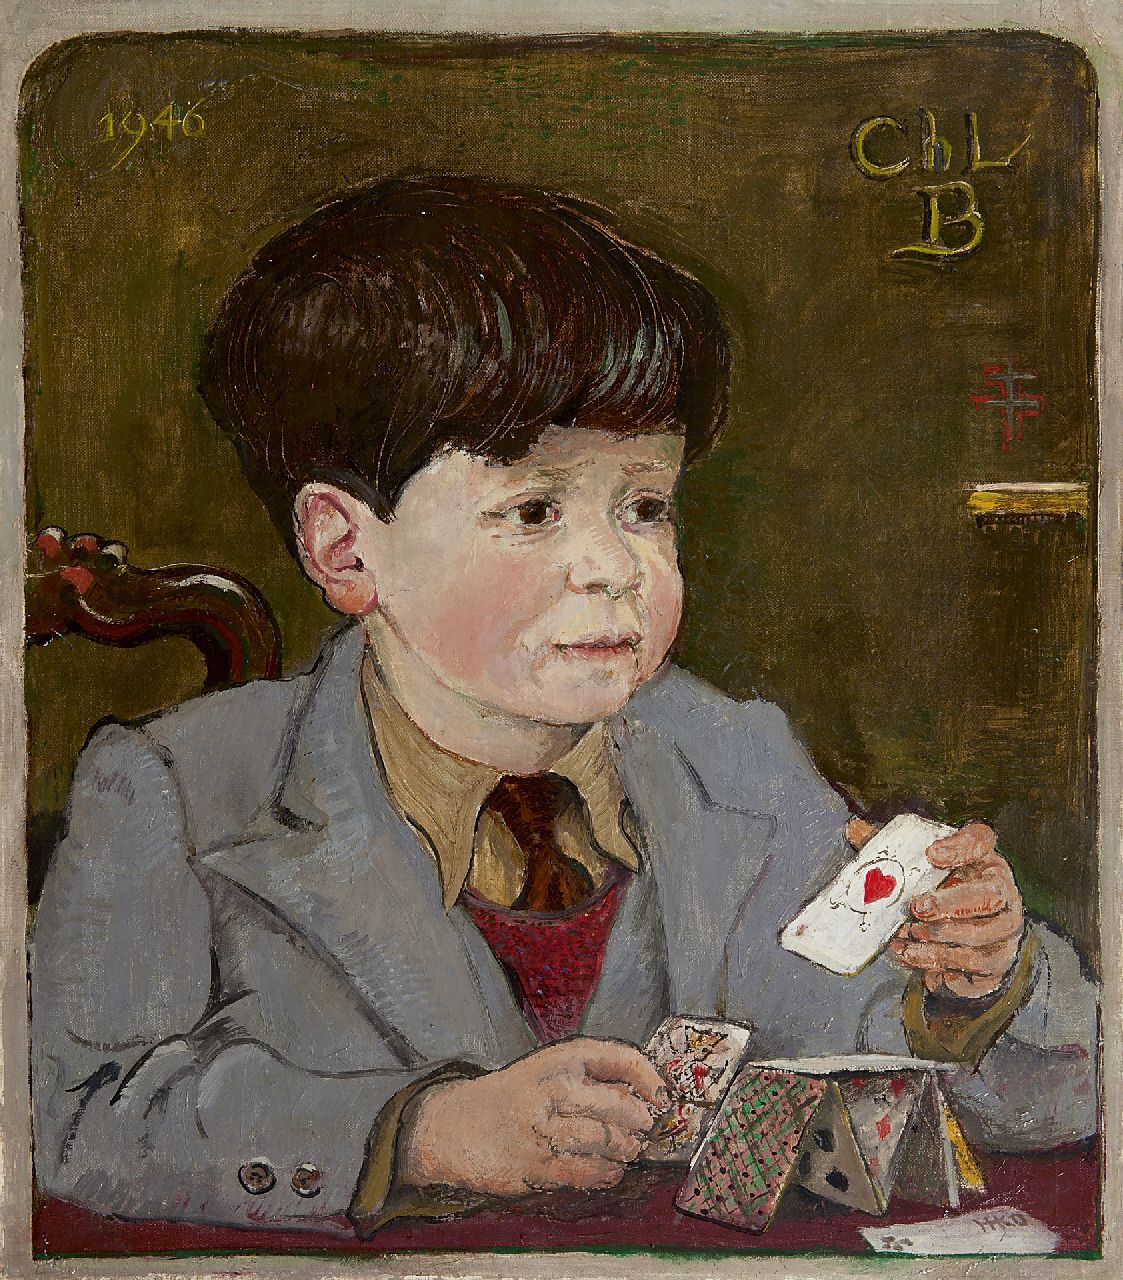 Kamerlingh Onnes H.H.  | 'Harm' Henrick Kamerlingh Onnes | Paintings offered for sale | A child with playing cards, oil on canvas 45.8 x 40.6 cm, signed l.r. with monogram and dated 1946